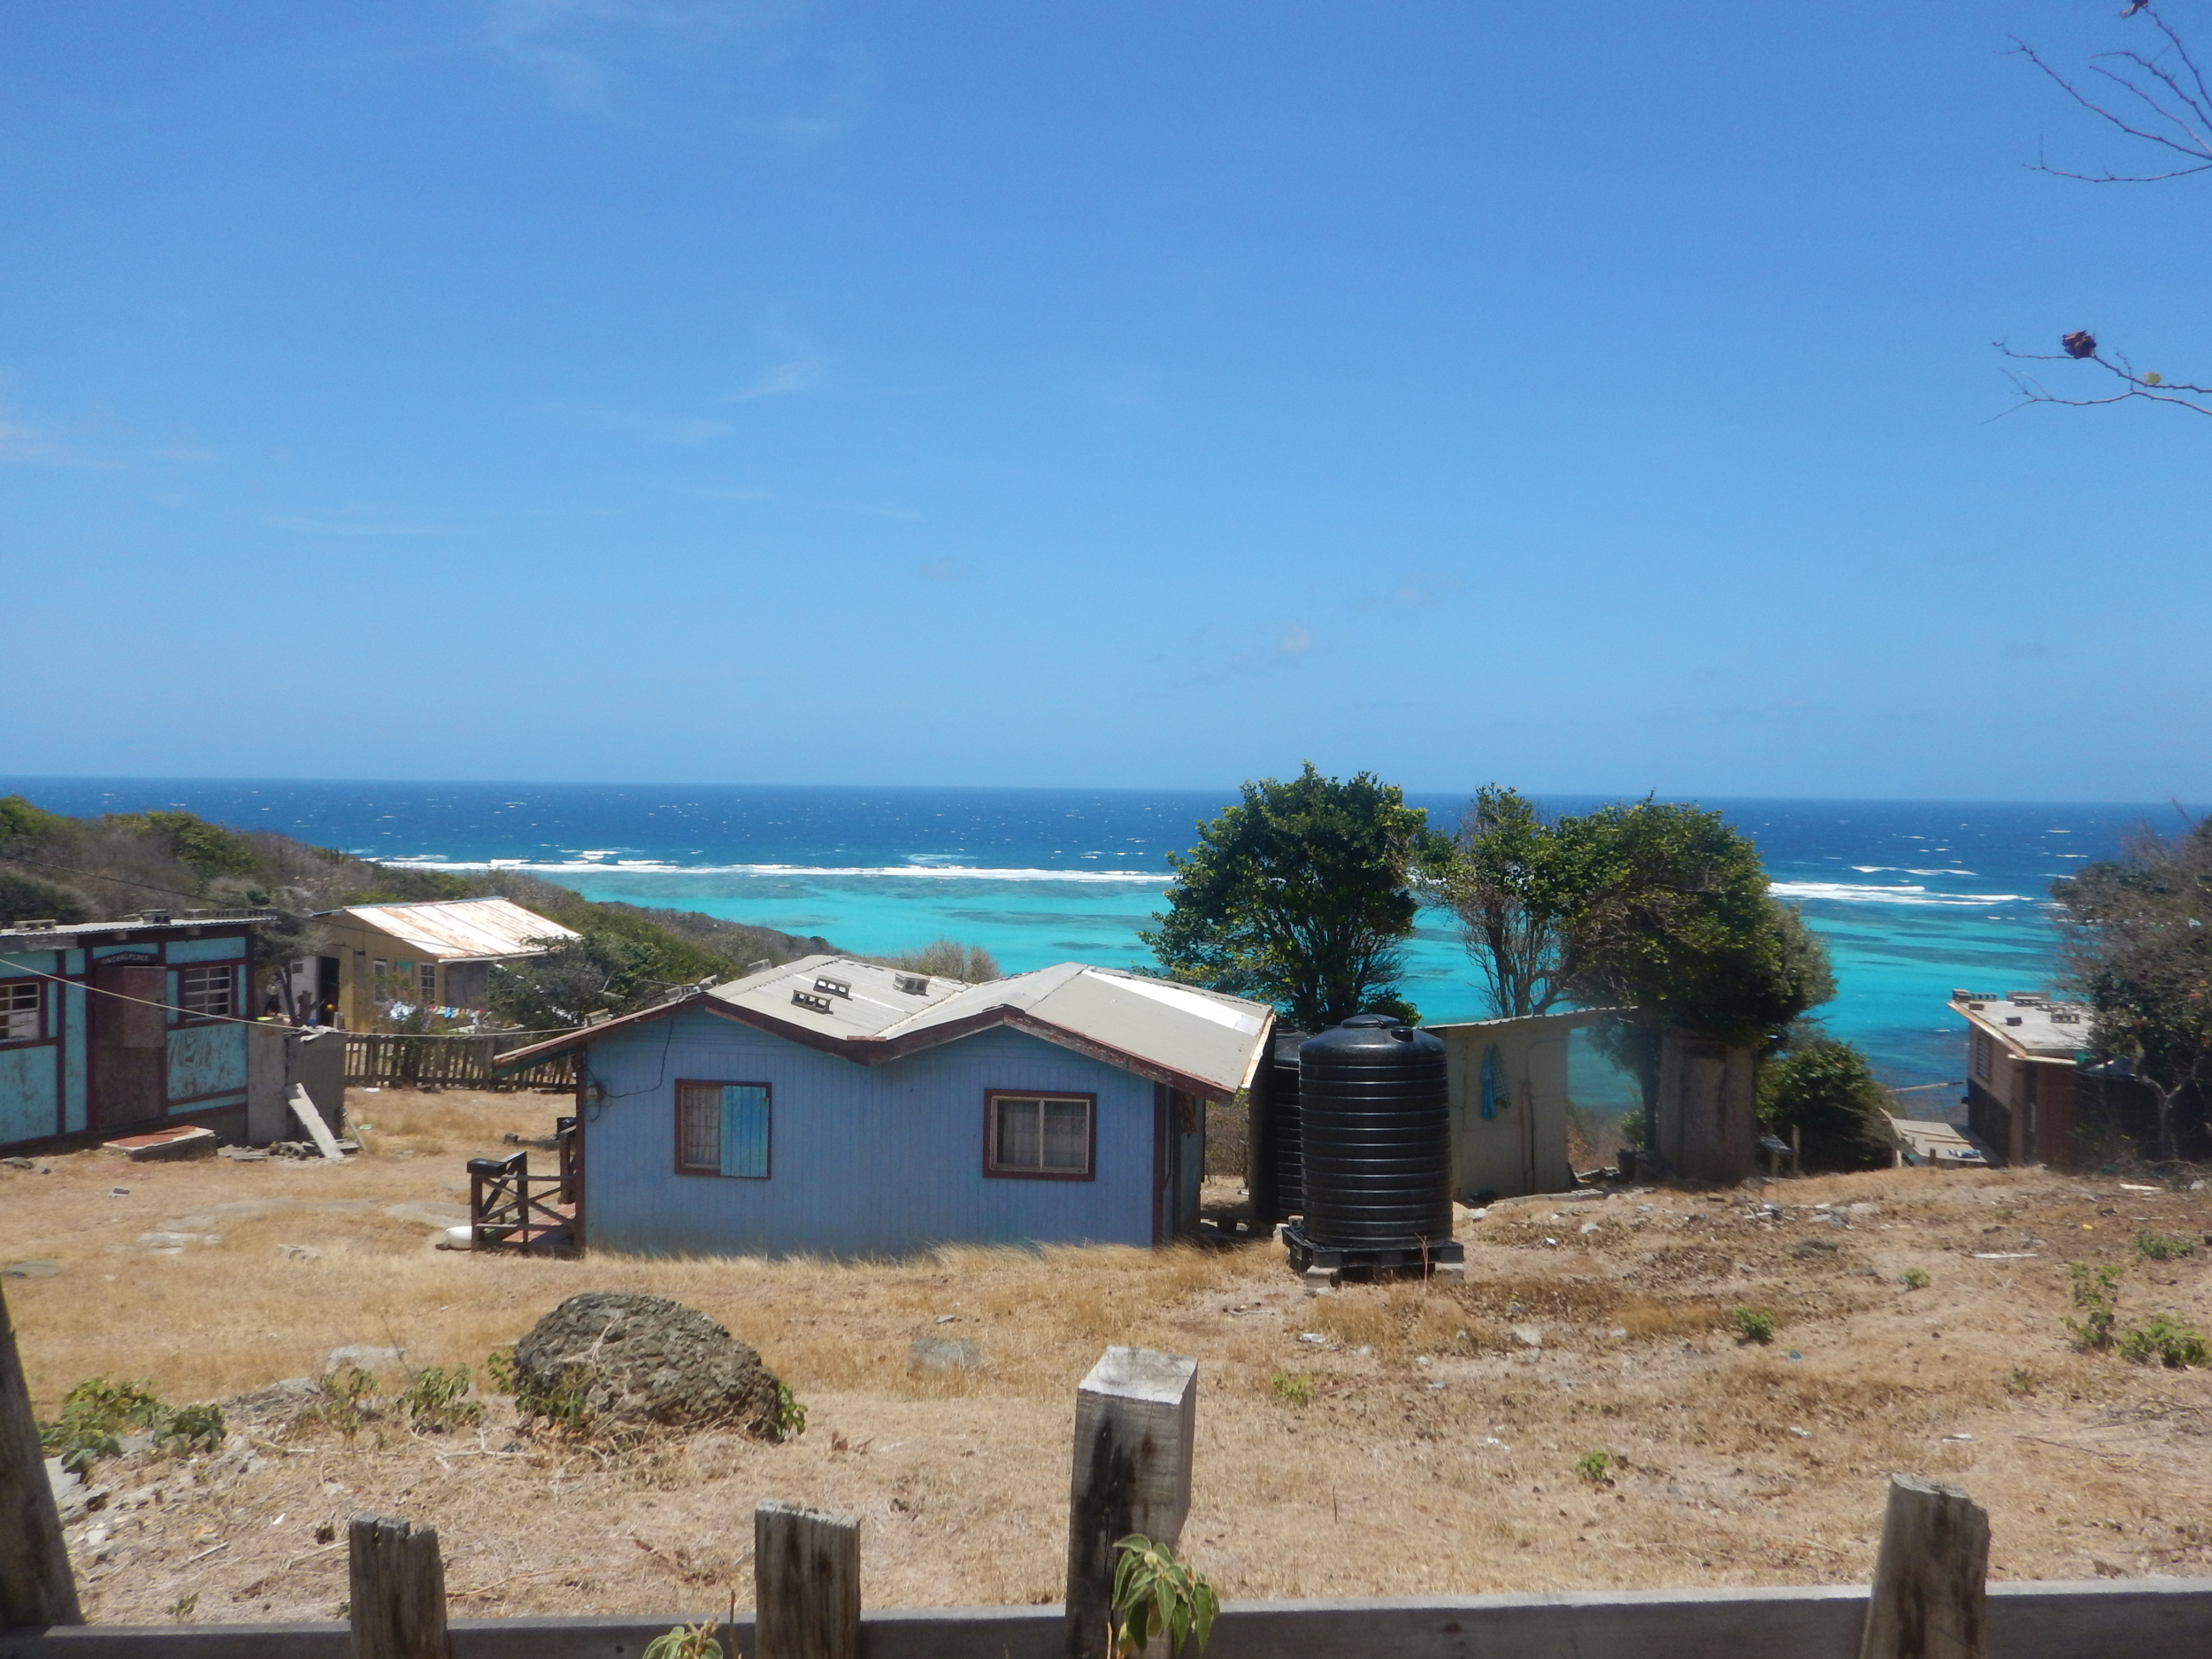 16. Even the small homes have views in Canouan